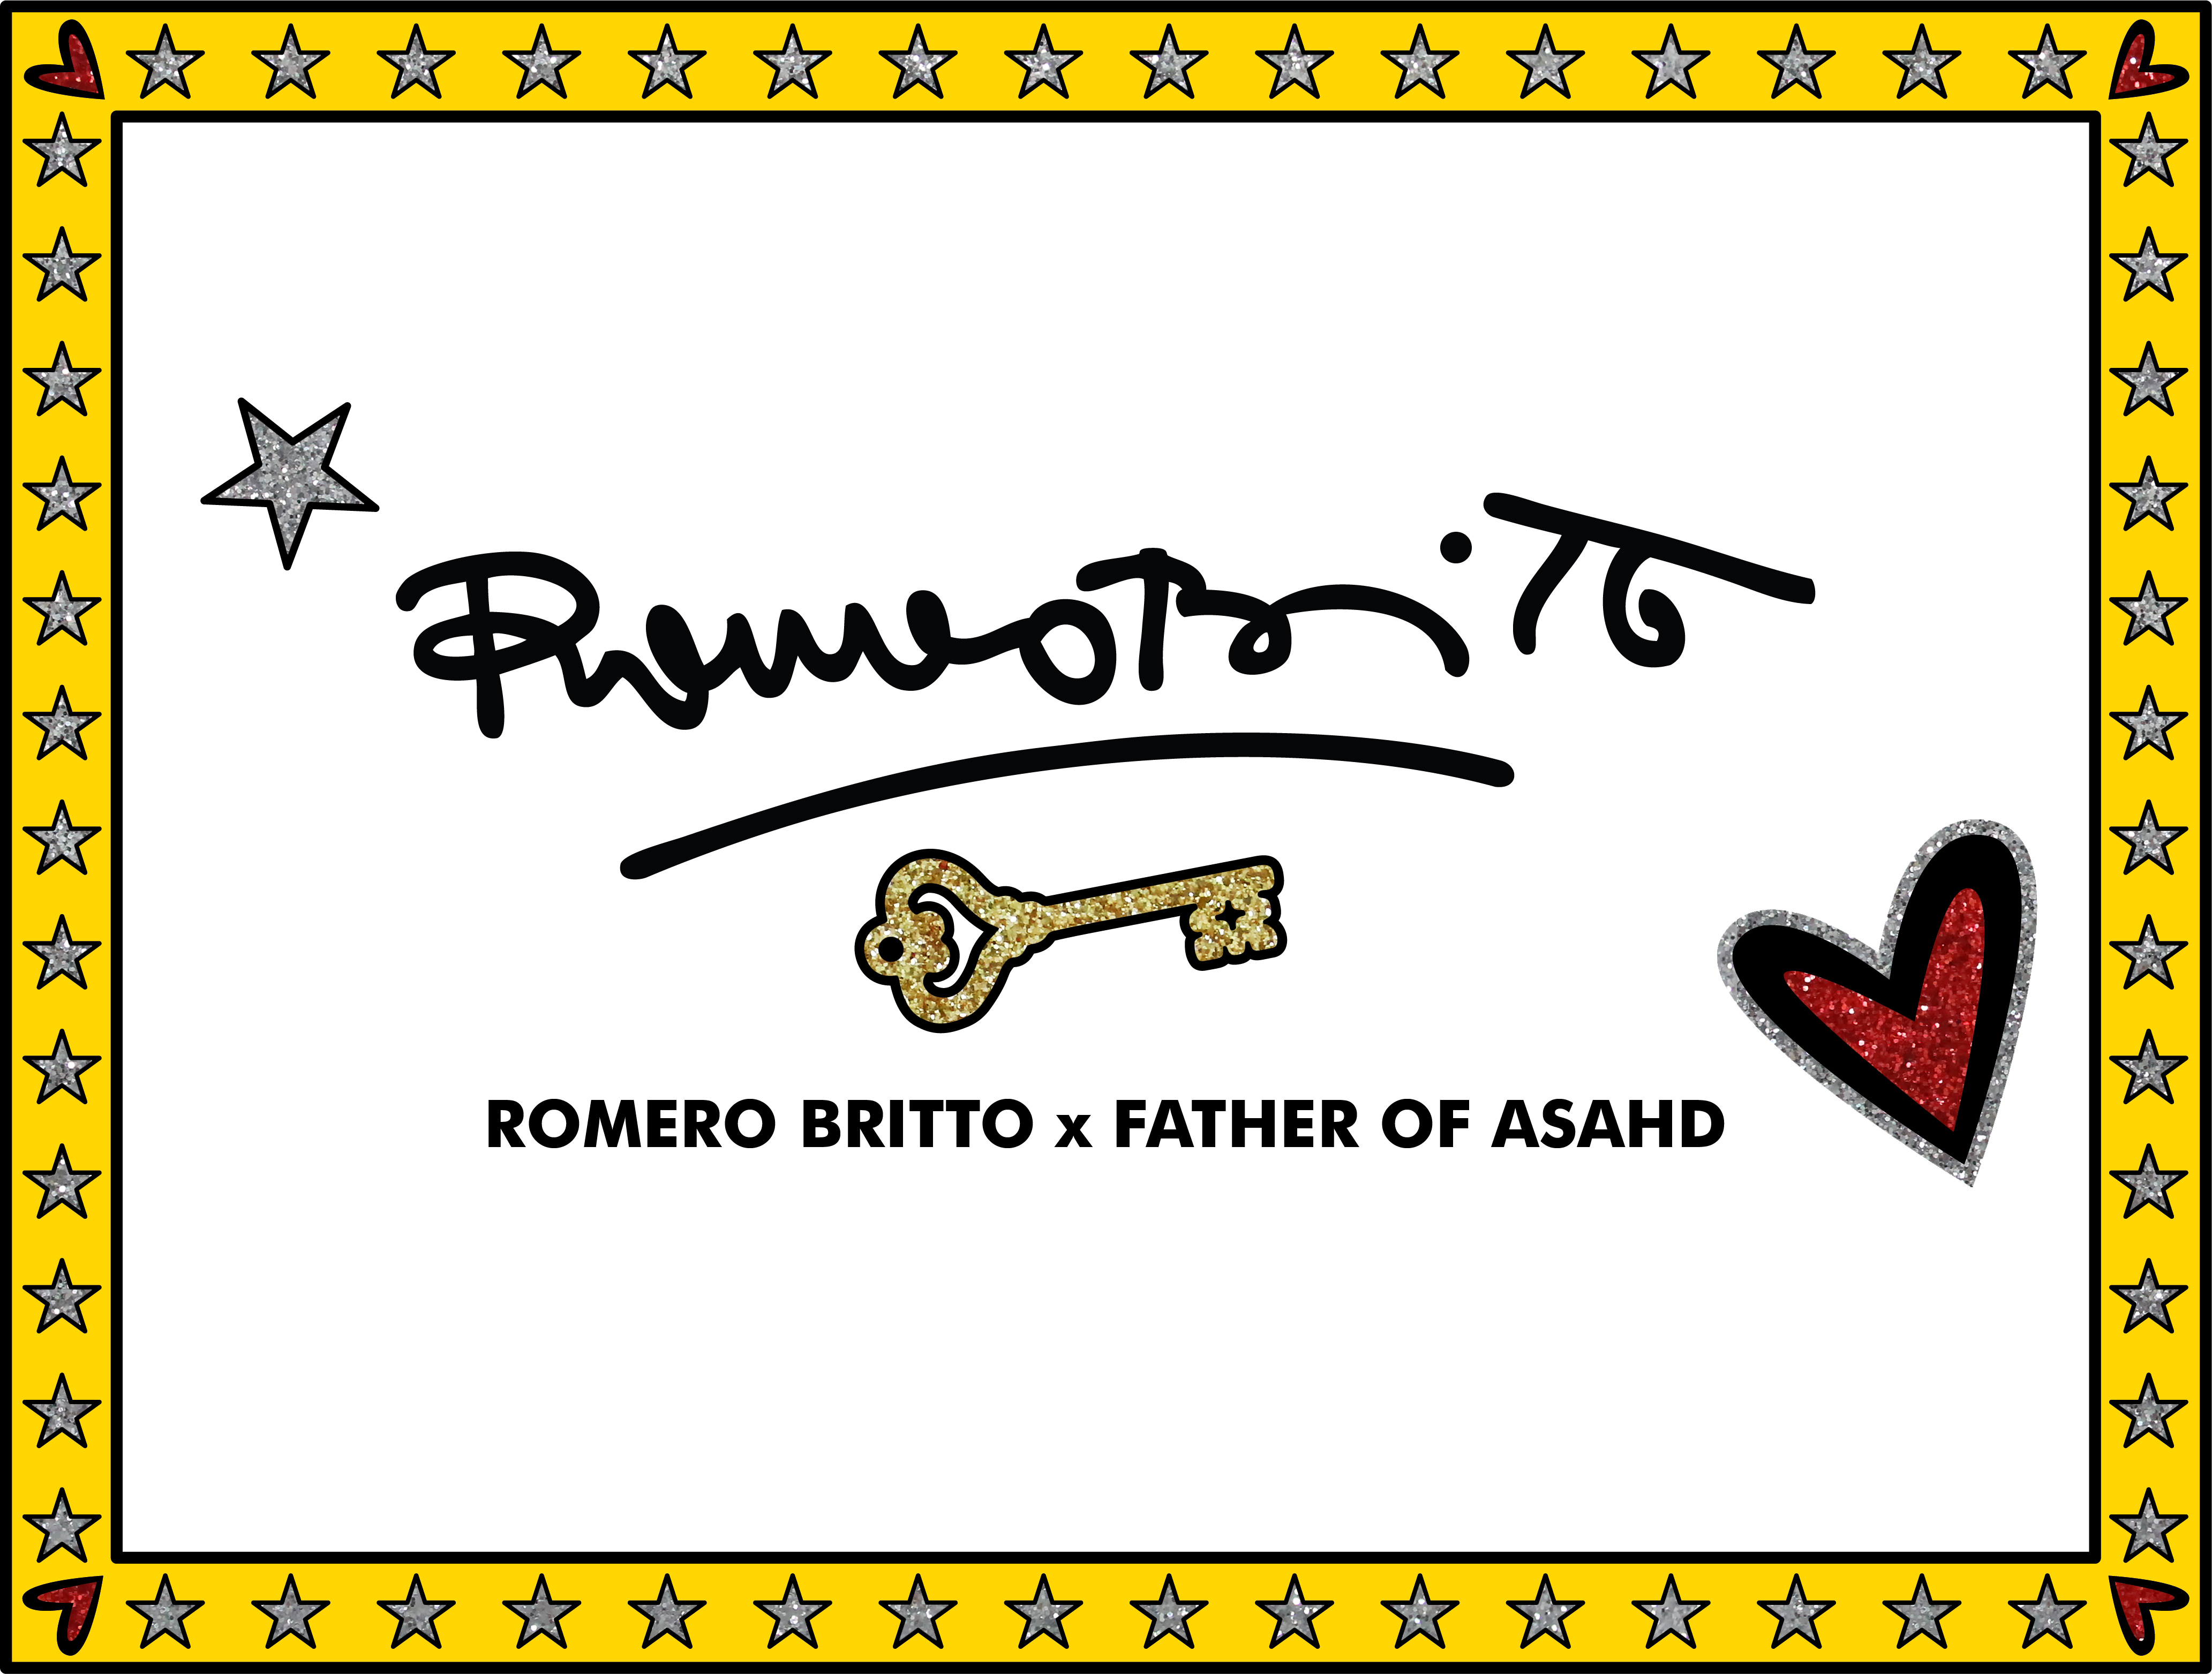 Shop the Romero Britto x Father of Asahd Collection Now!